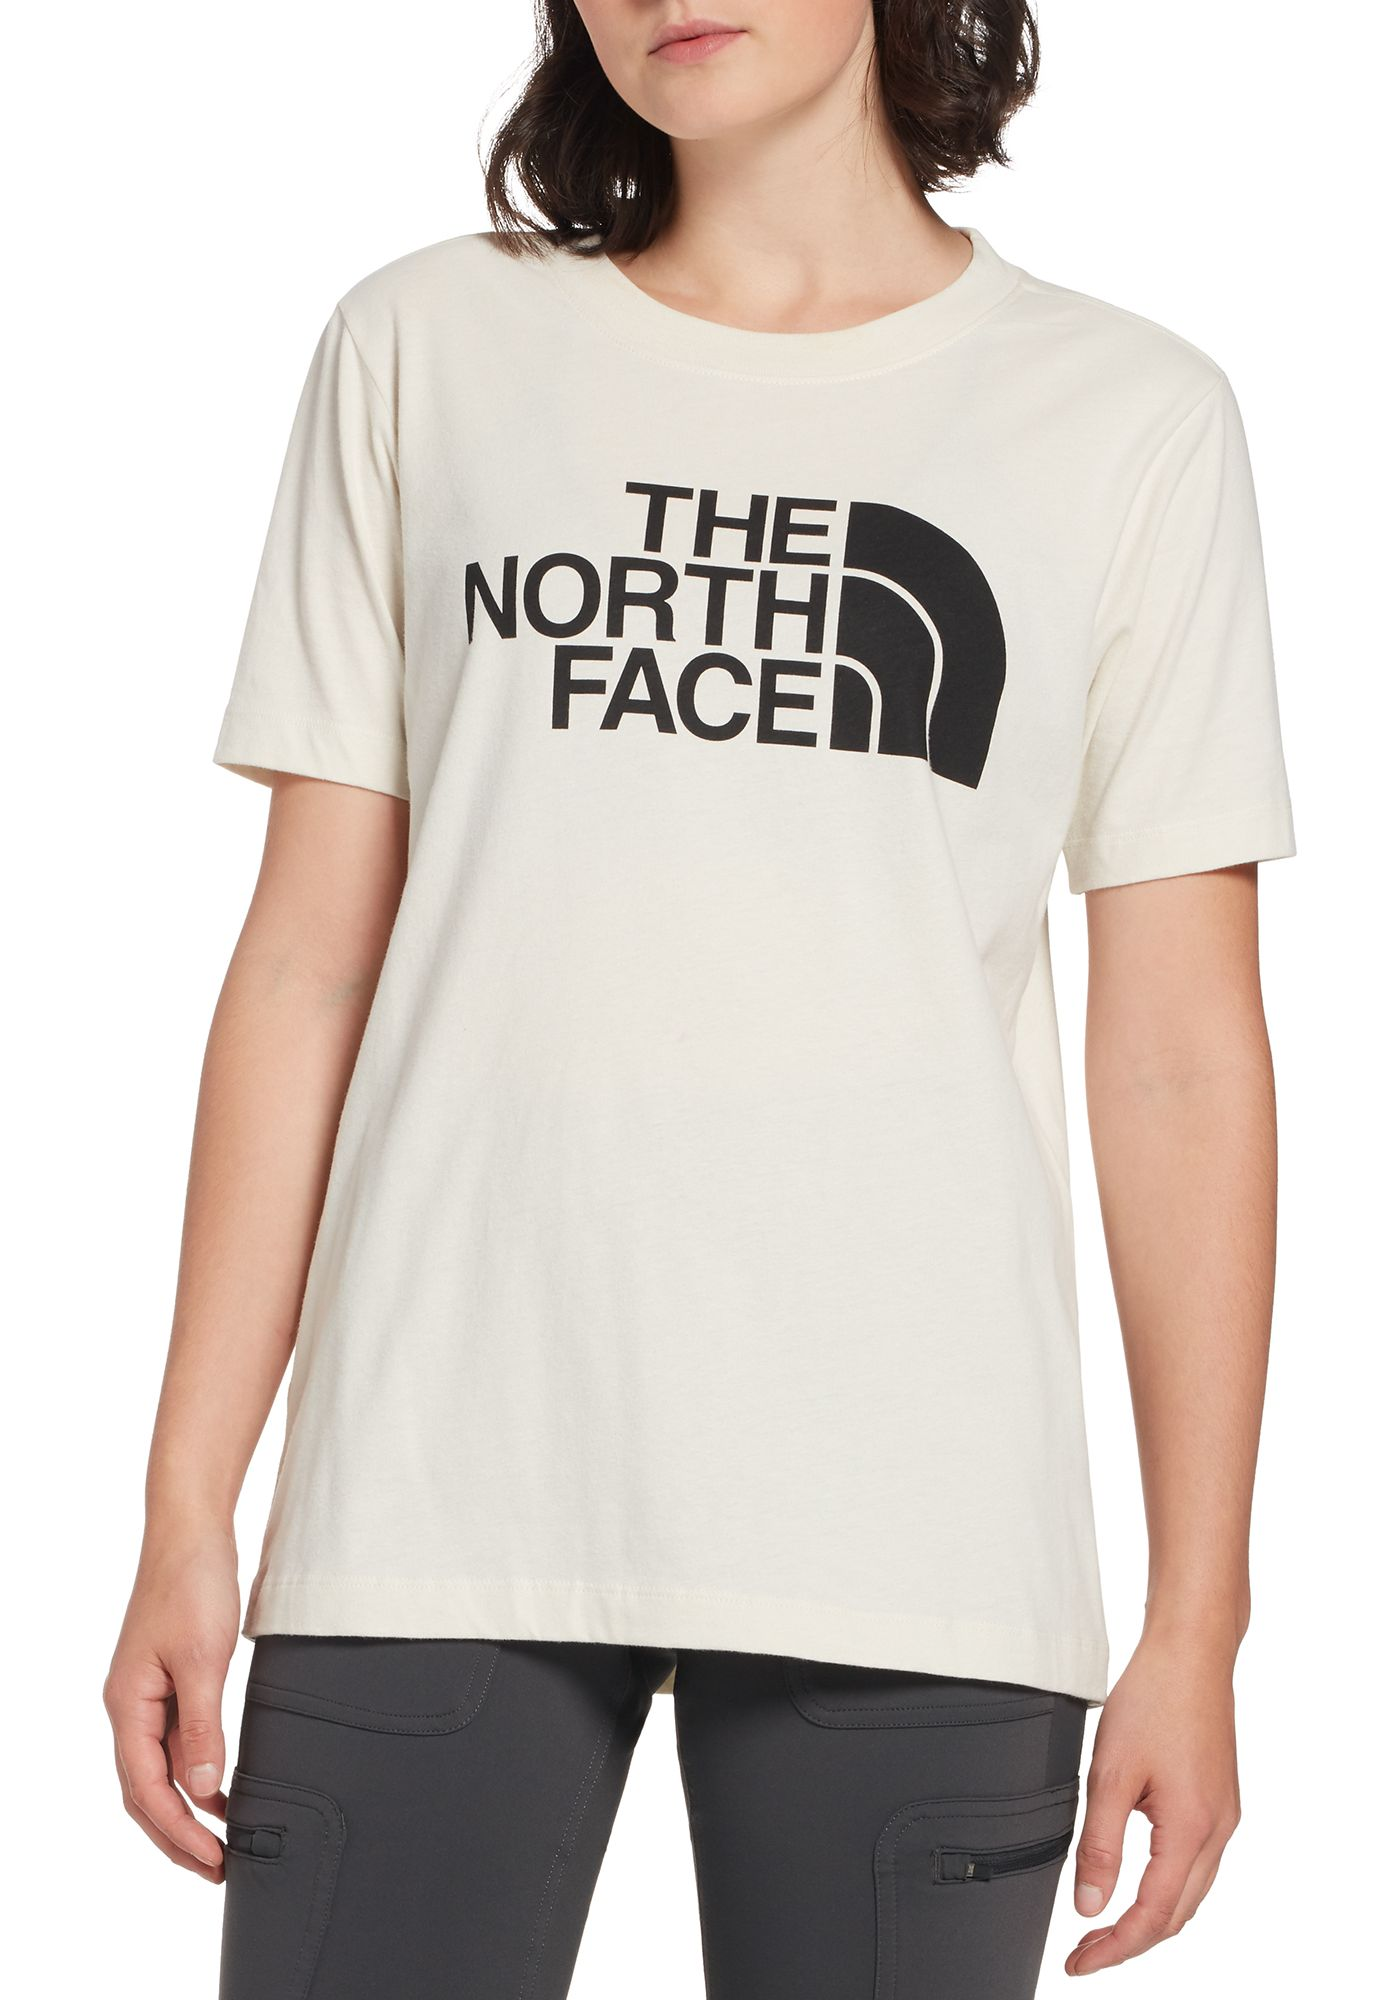 The North Face Women's Half Dome Short Sleeve T-Shirt